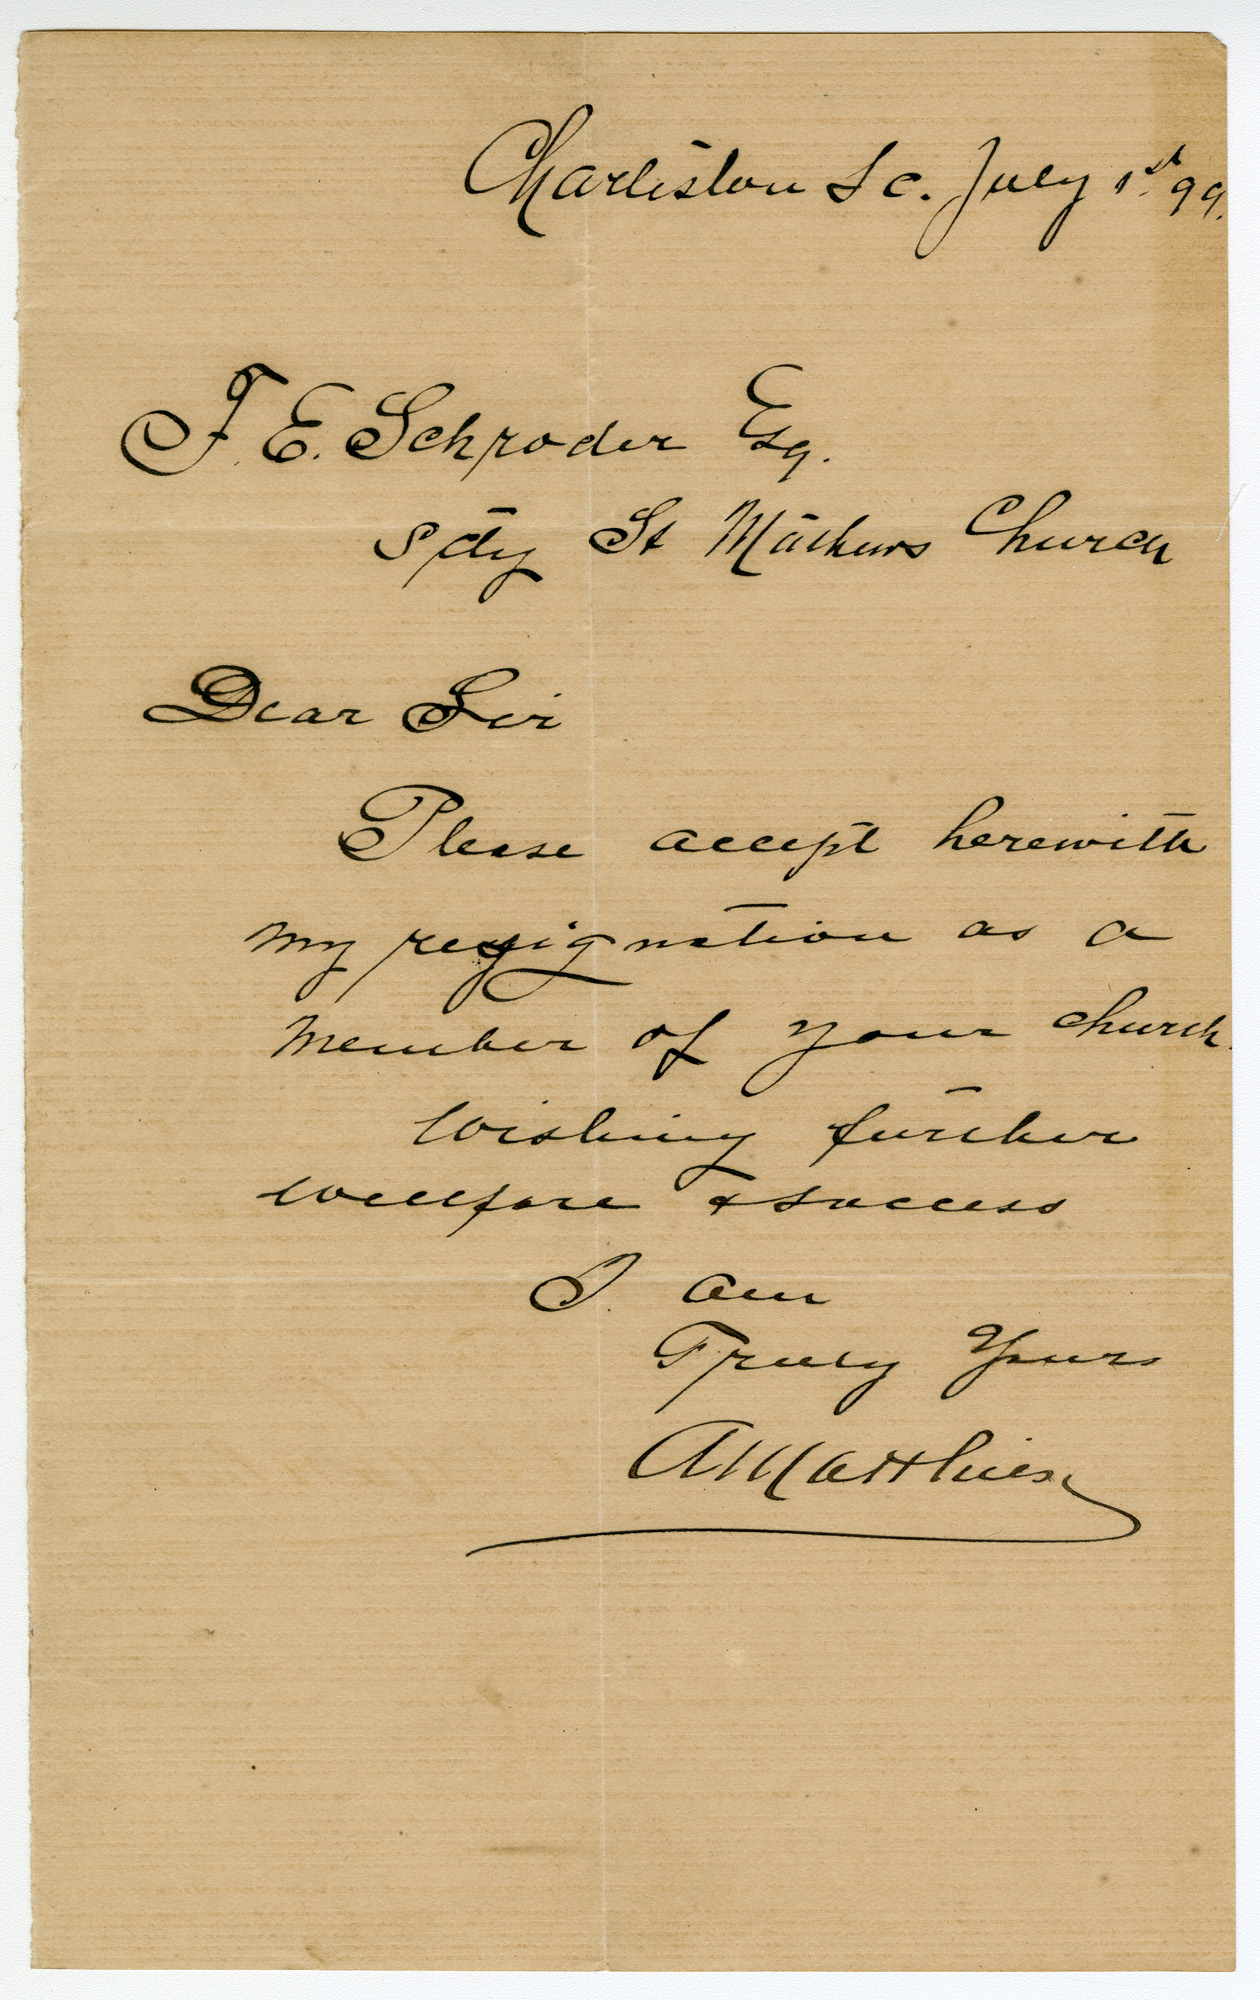 Letter from a member of church to F. E. Schroder, Esq., July 1, 1899.